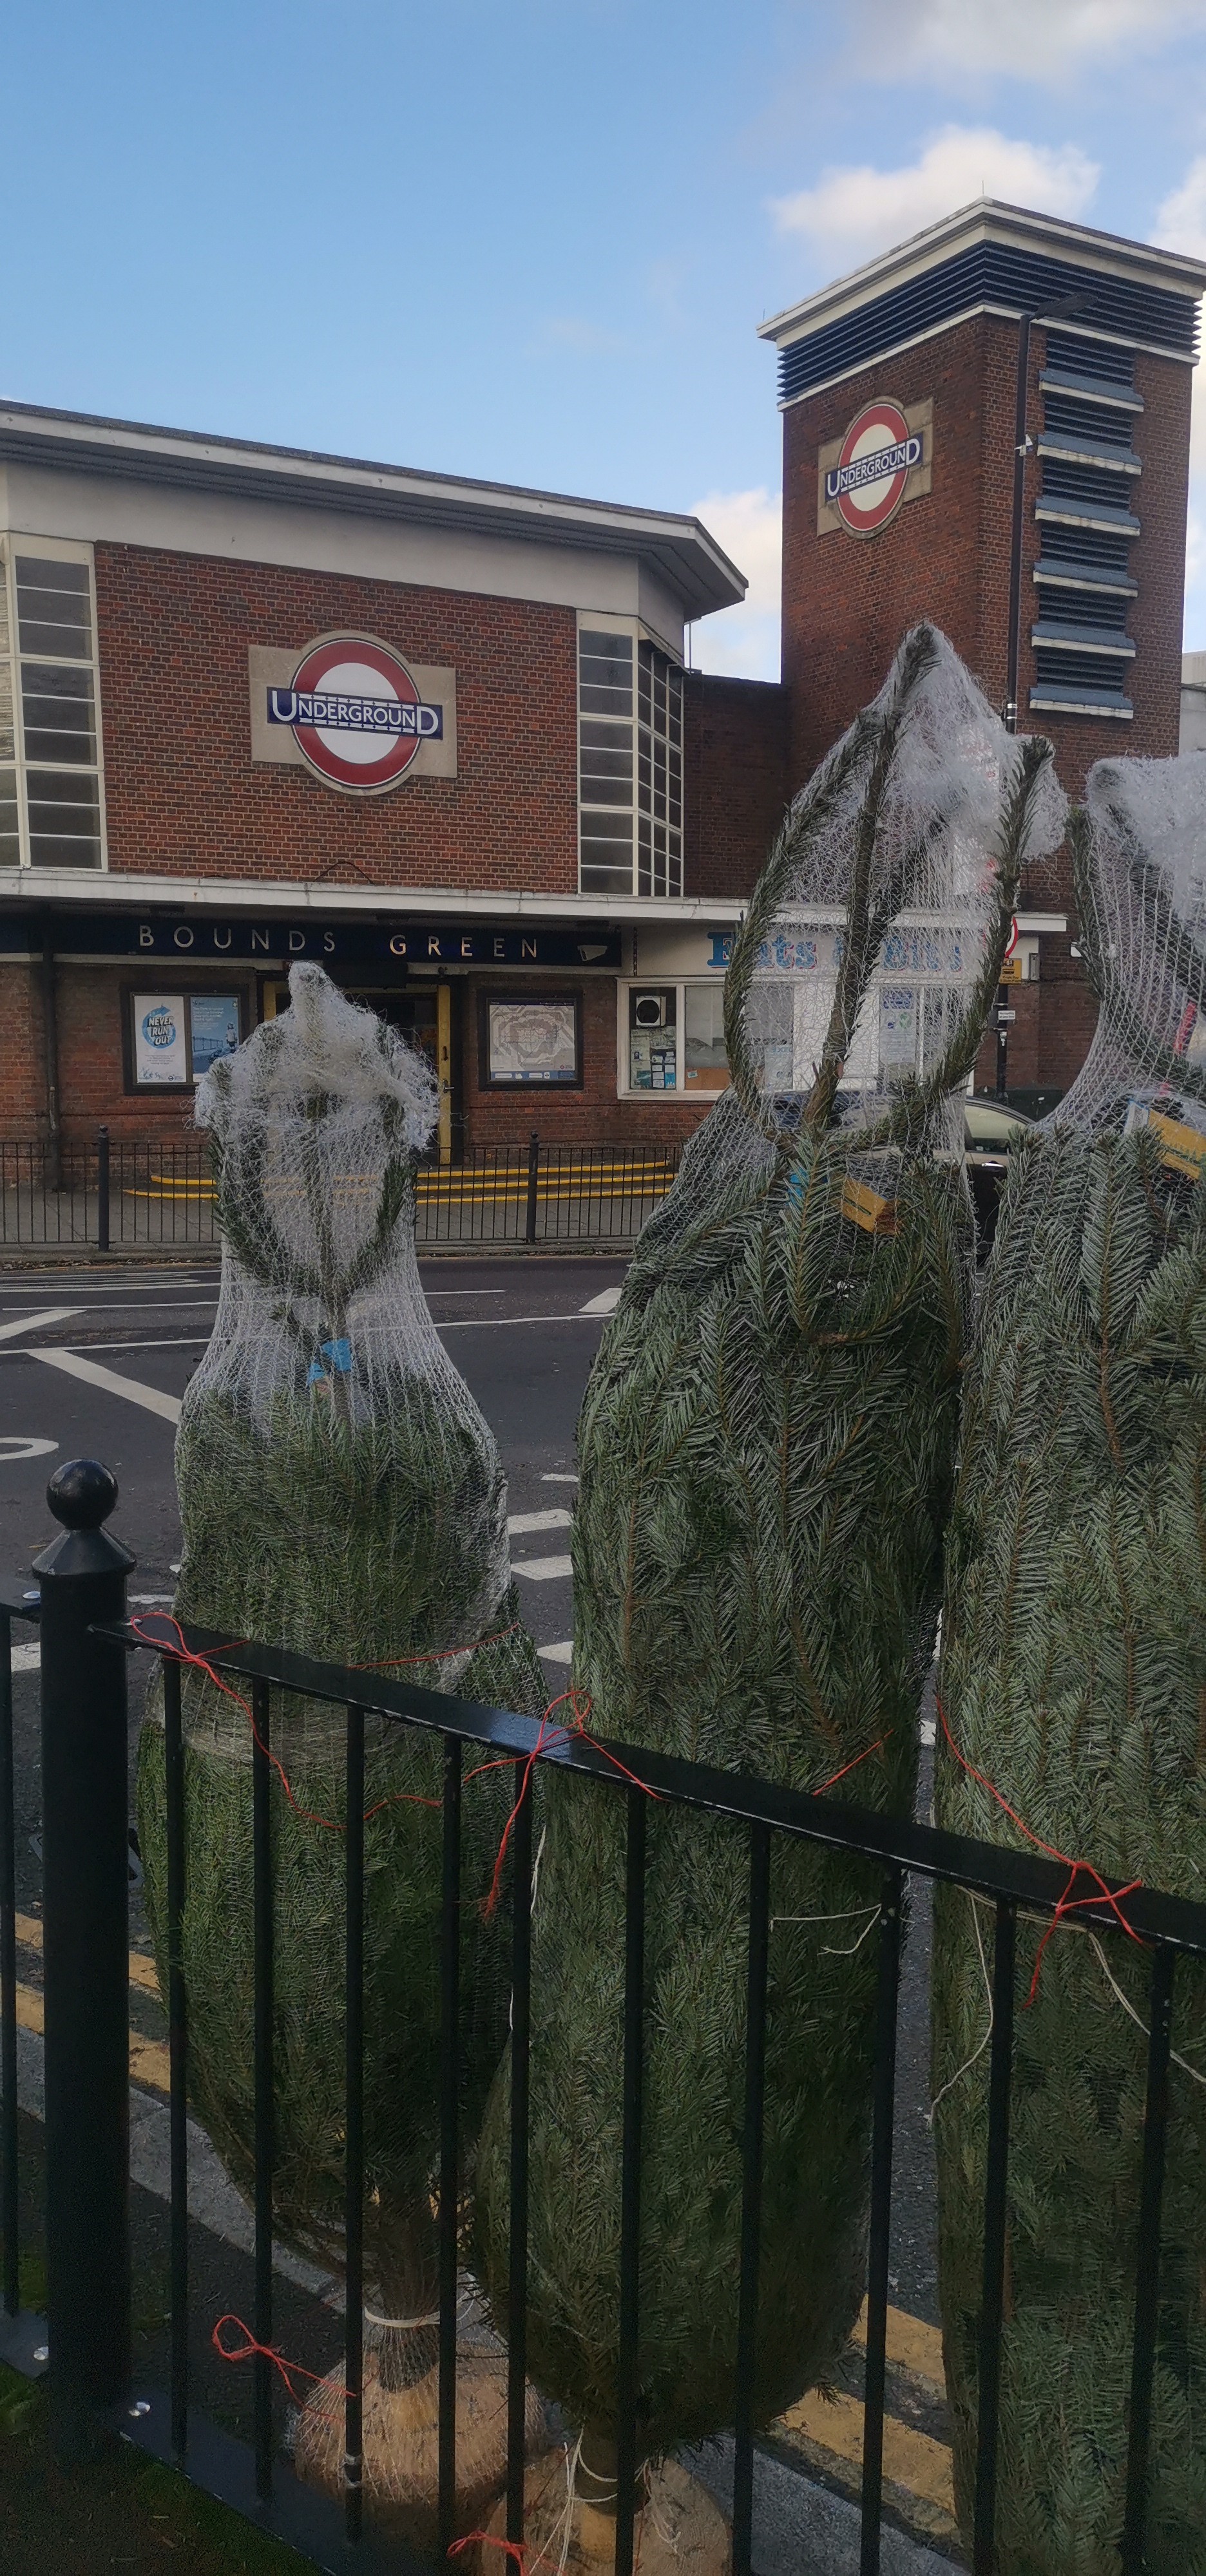 Xmas Trees at Bounds Green Tube